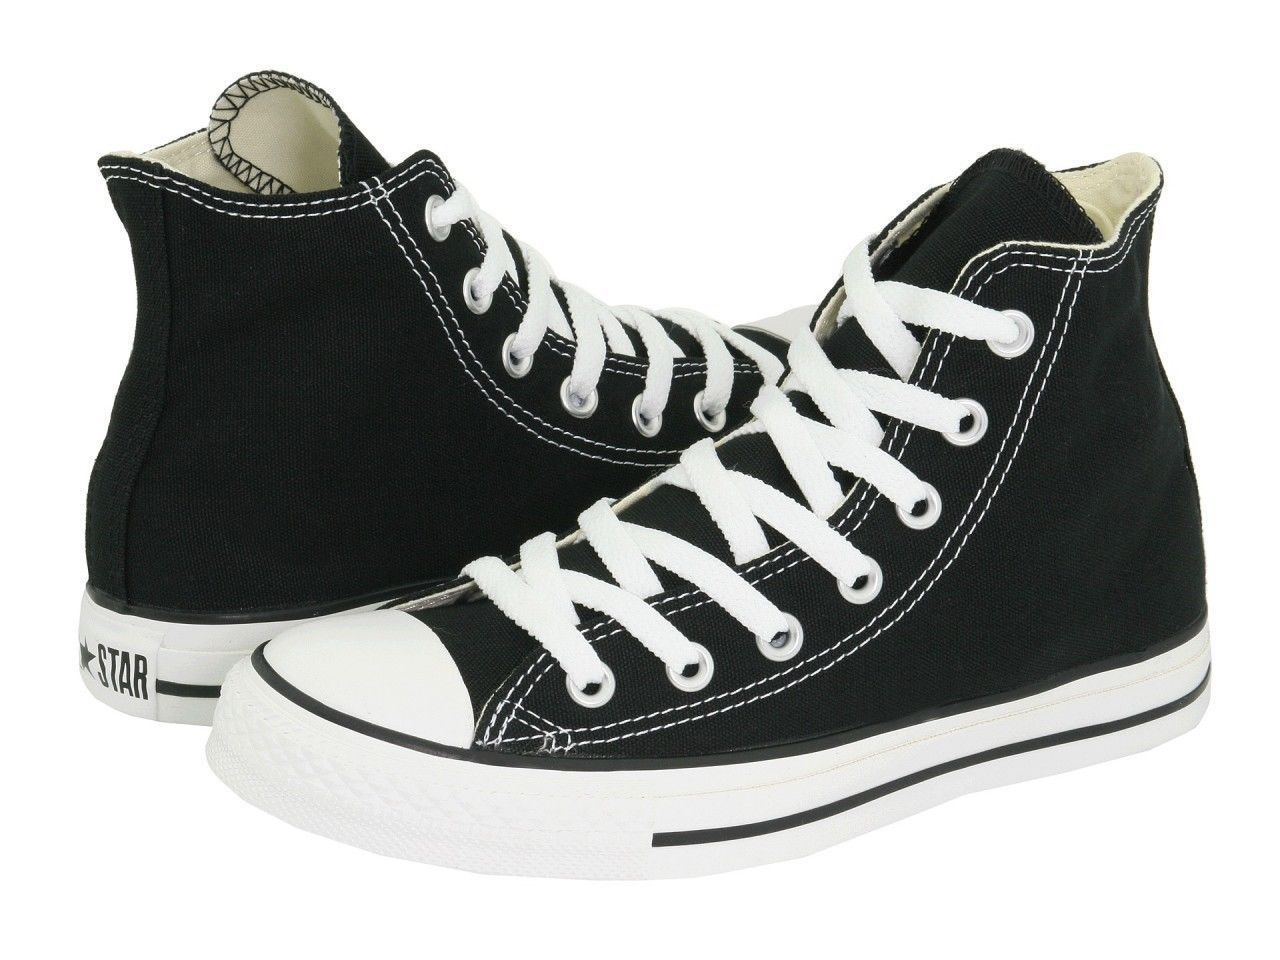 d0791c7255d8ea Converse All Star Chuck Taylor Hi M9160 Black Canvas Shoes Medium (B ...